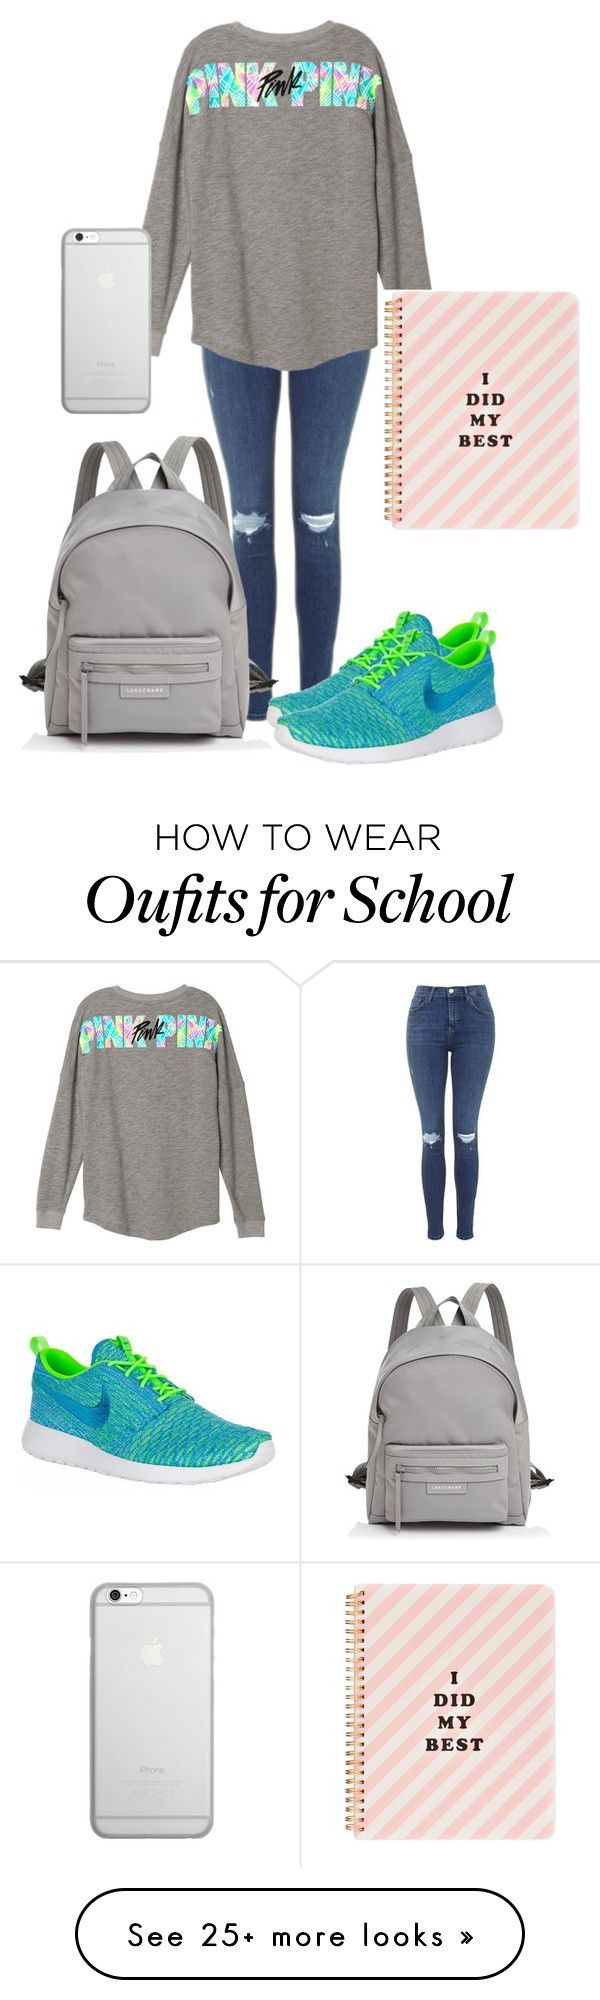 """School"" by monyquemosqueda on Polyvore featuring Topshop, Longchamp, NIKE, Native Union and ban.do"